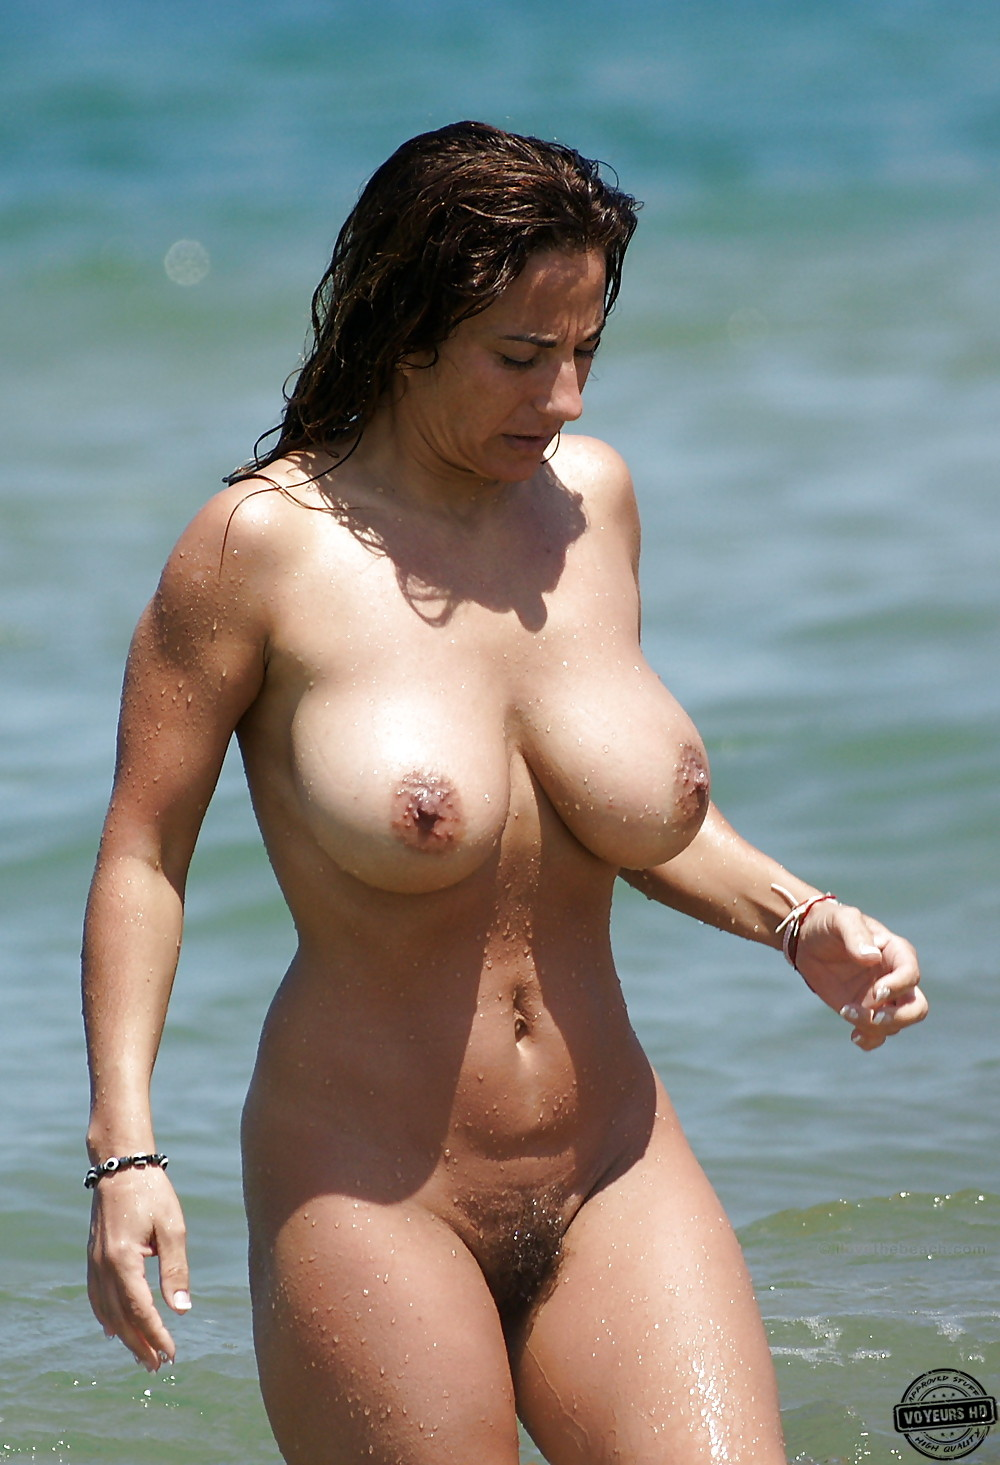 Milf With Big Tits At The Beach - Voyeur Videos-2790